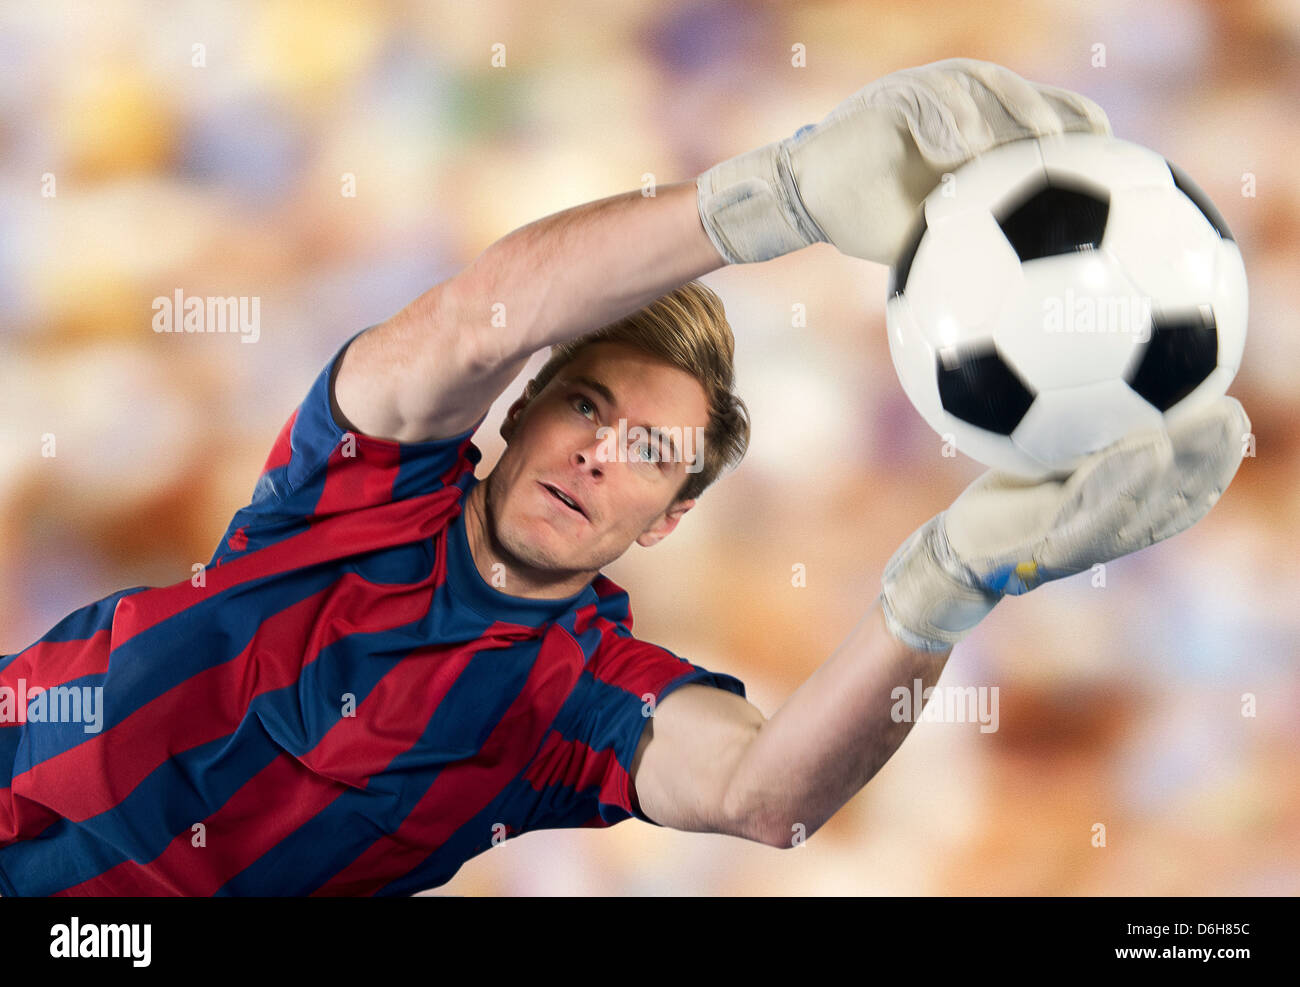 Soccer player catching ball in air - Stock Image